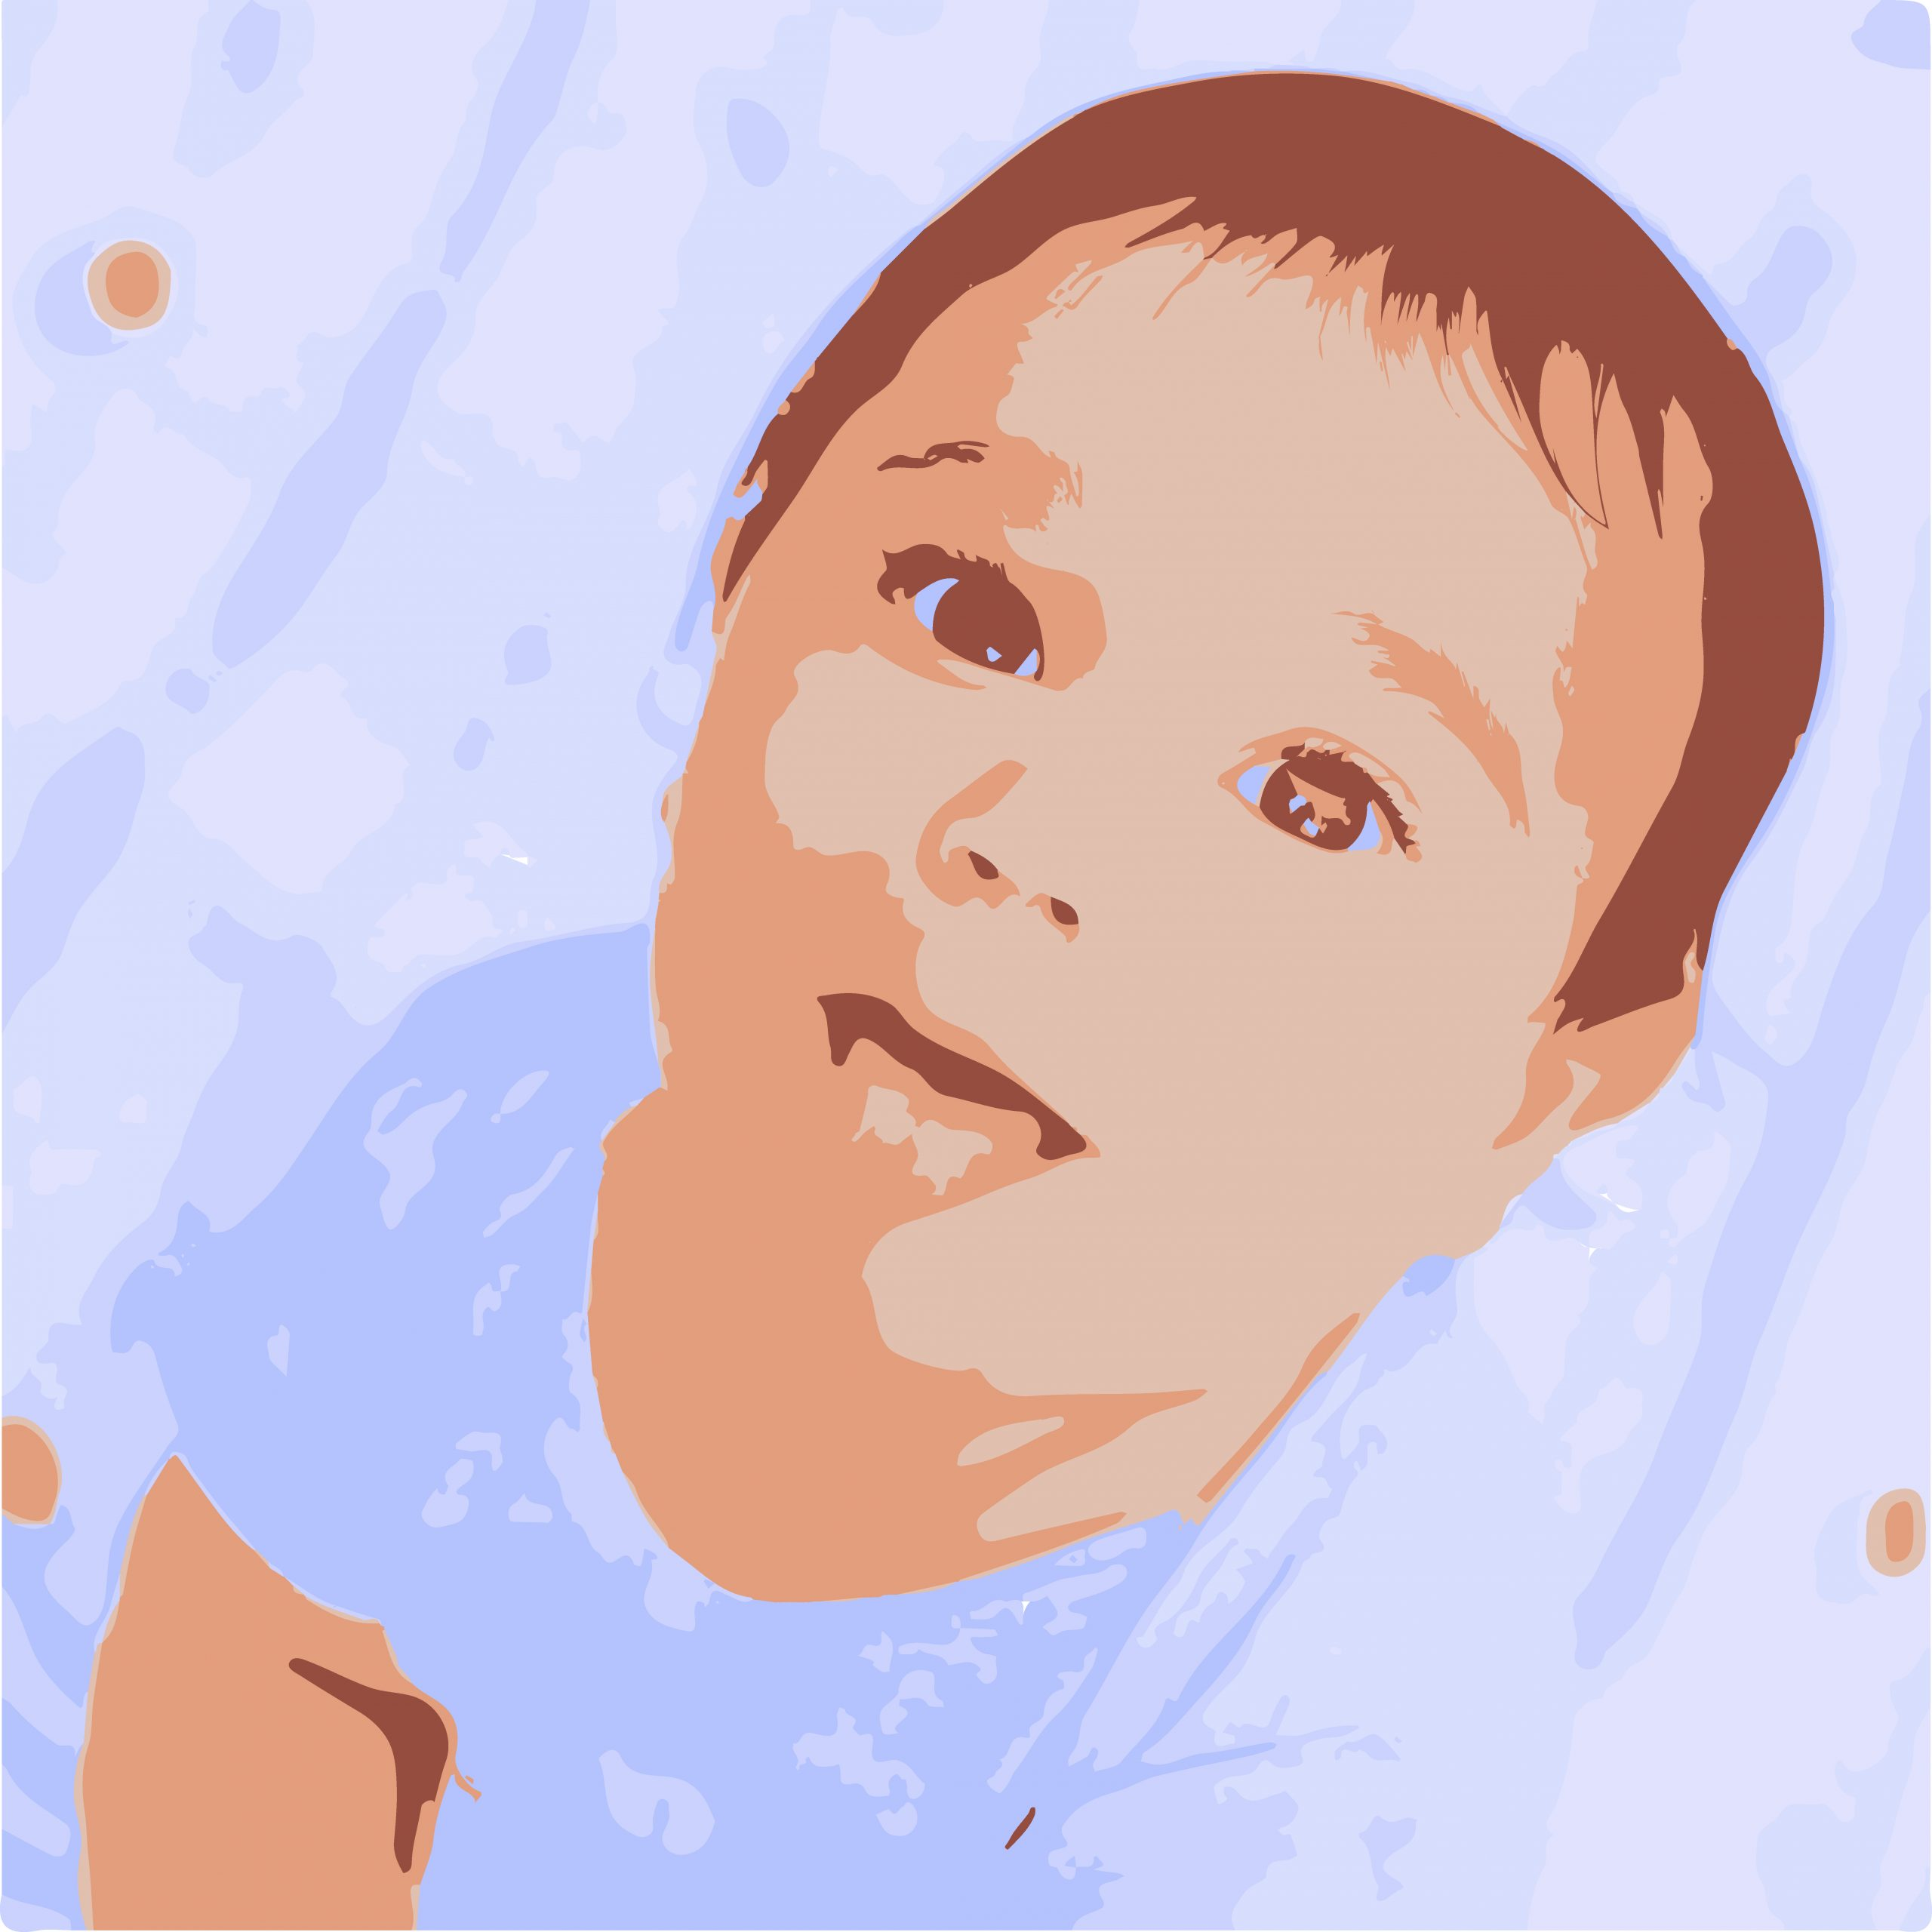 Illustration of a baby